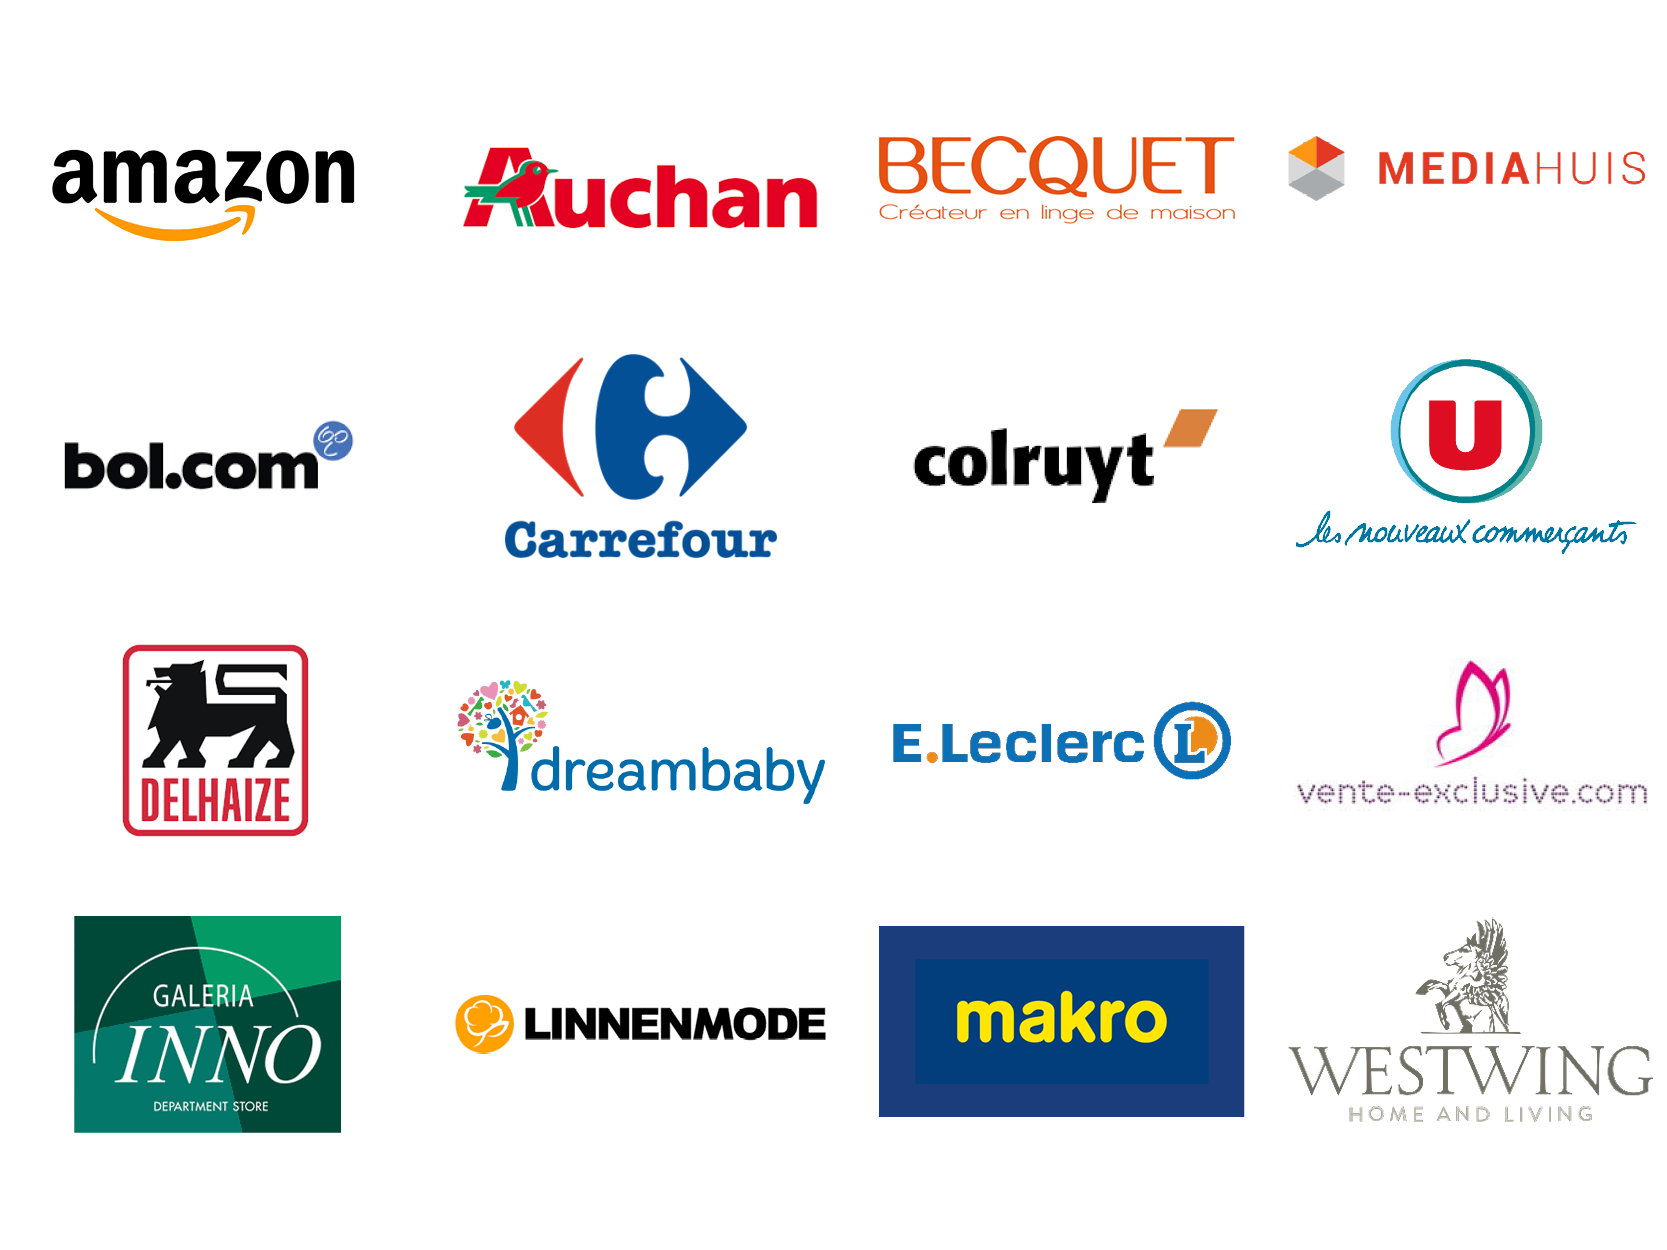 Some of our B2C customers